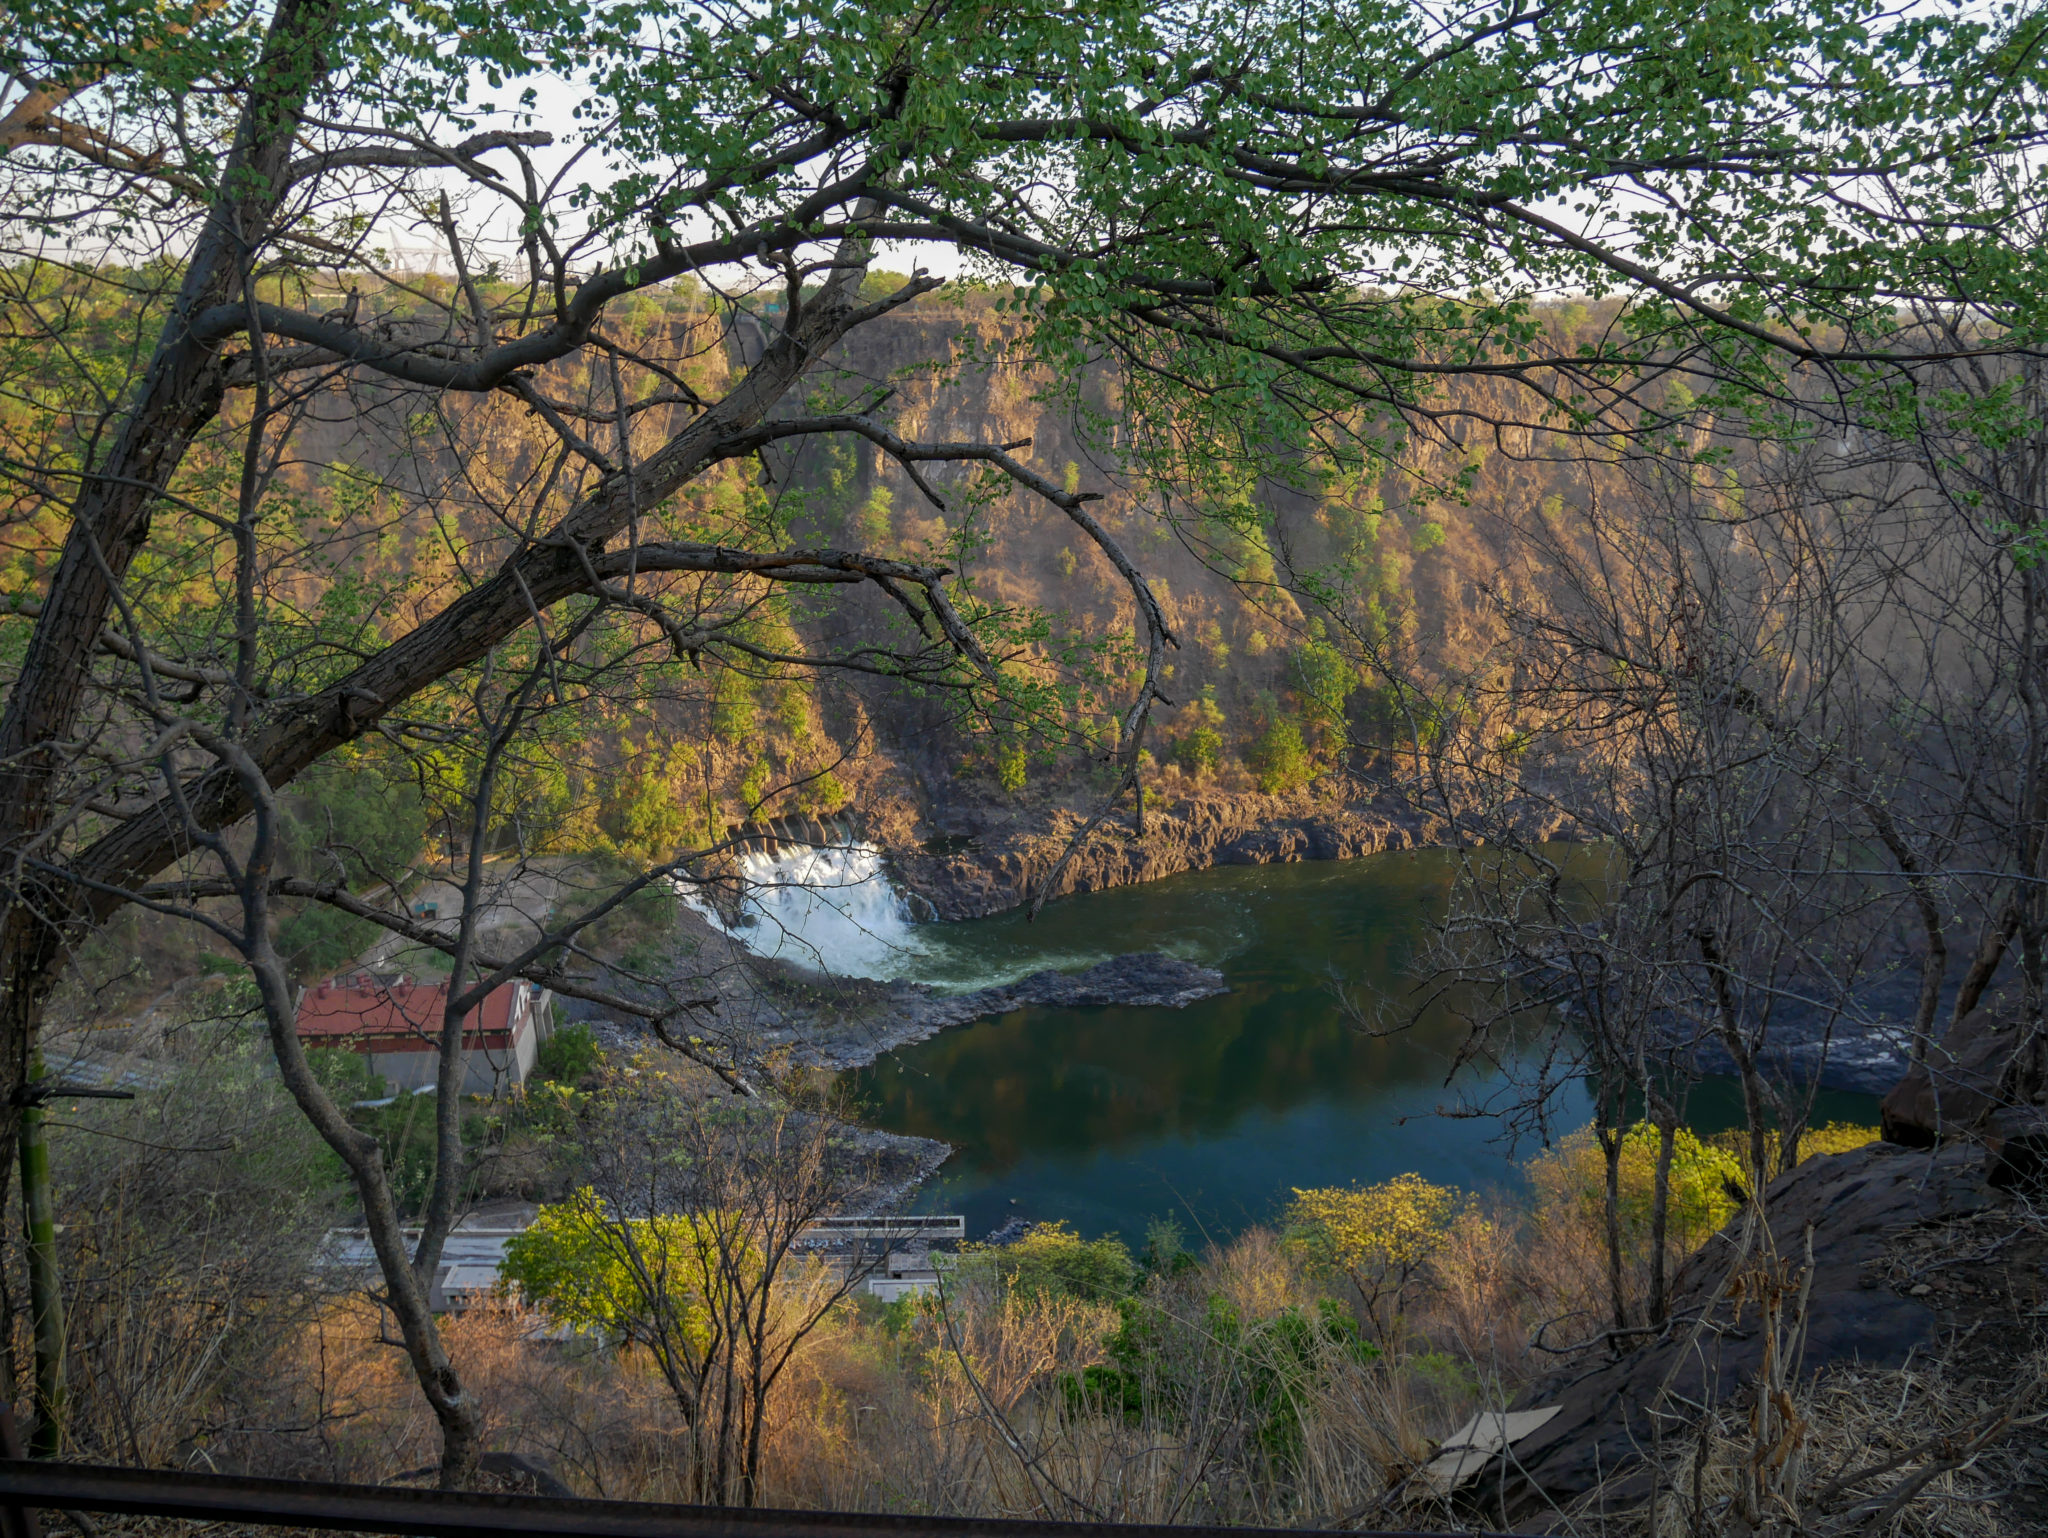 Victoria Falls seen from the Royal Livingstone Express train